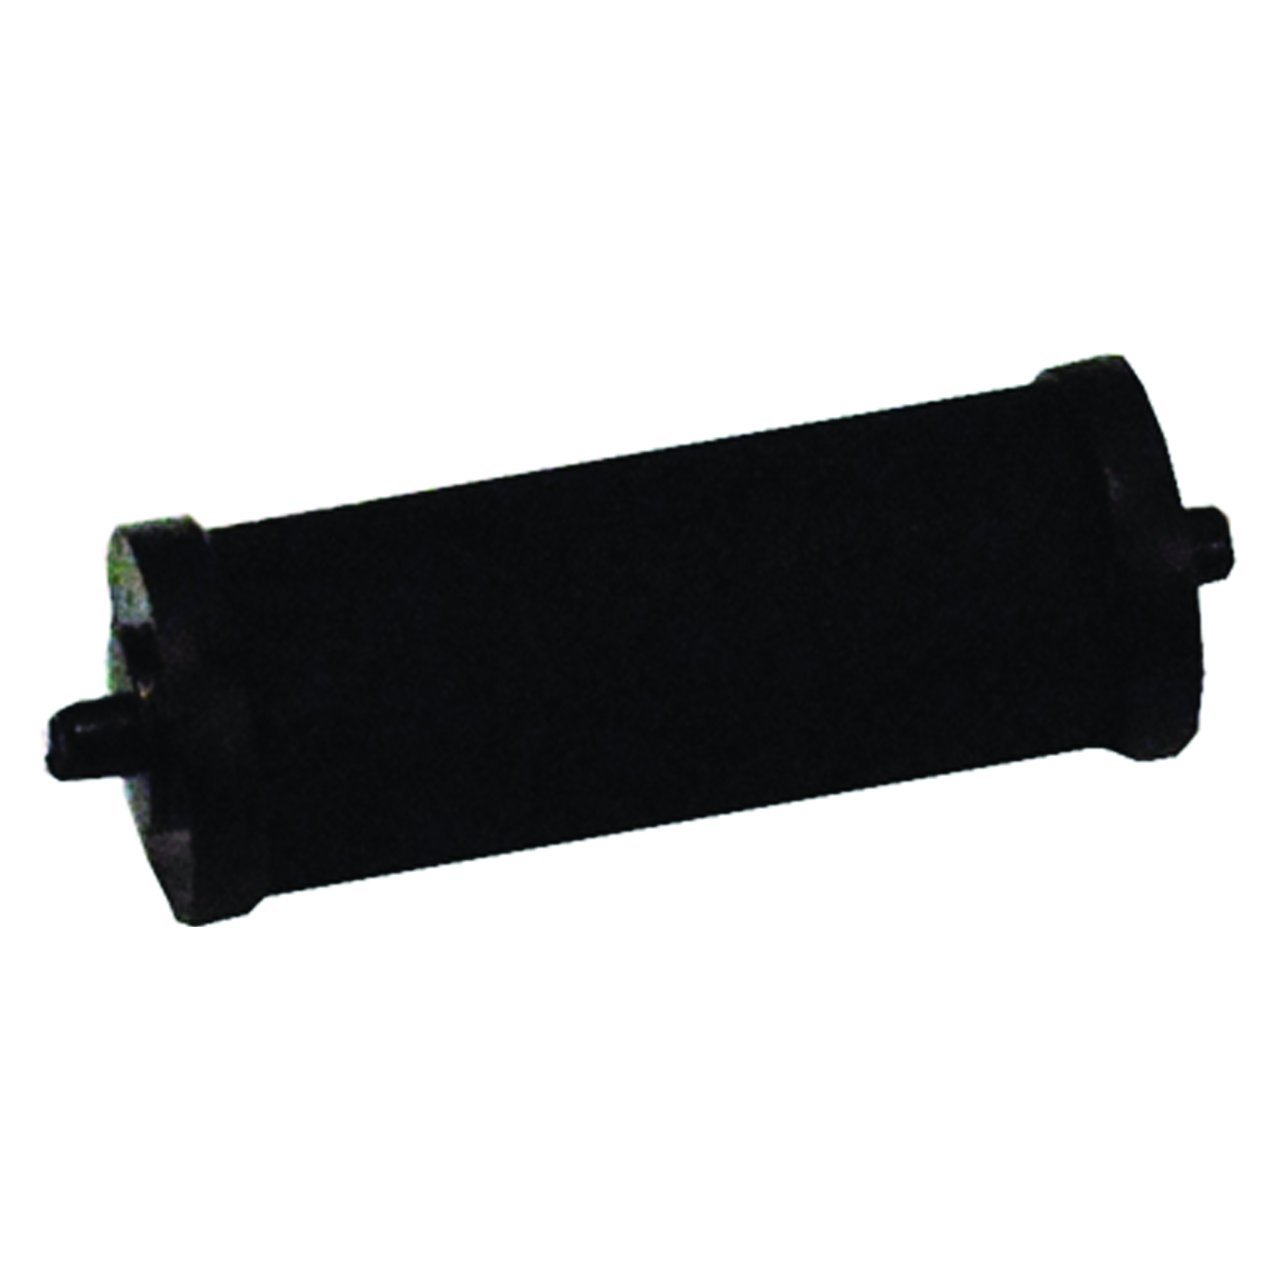 DayMark Safety Systems-IT112137 Date Coder Replacement Ink Roller, Black Ink, for SpeedyMark Express Marking Guns (Pack of 5)